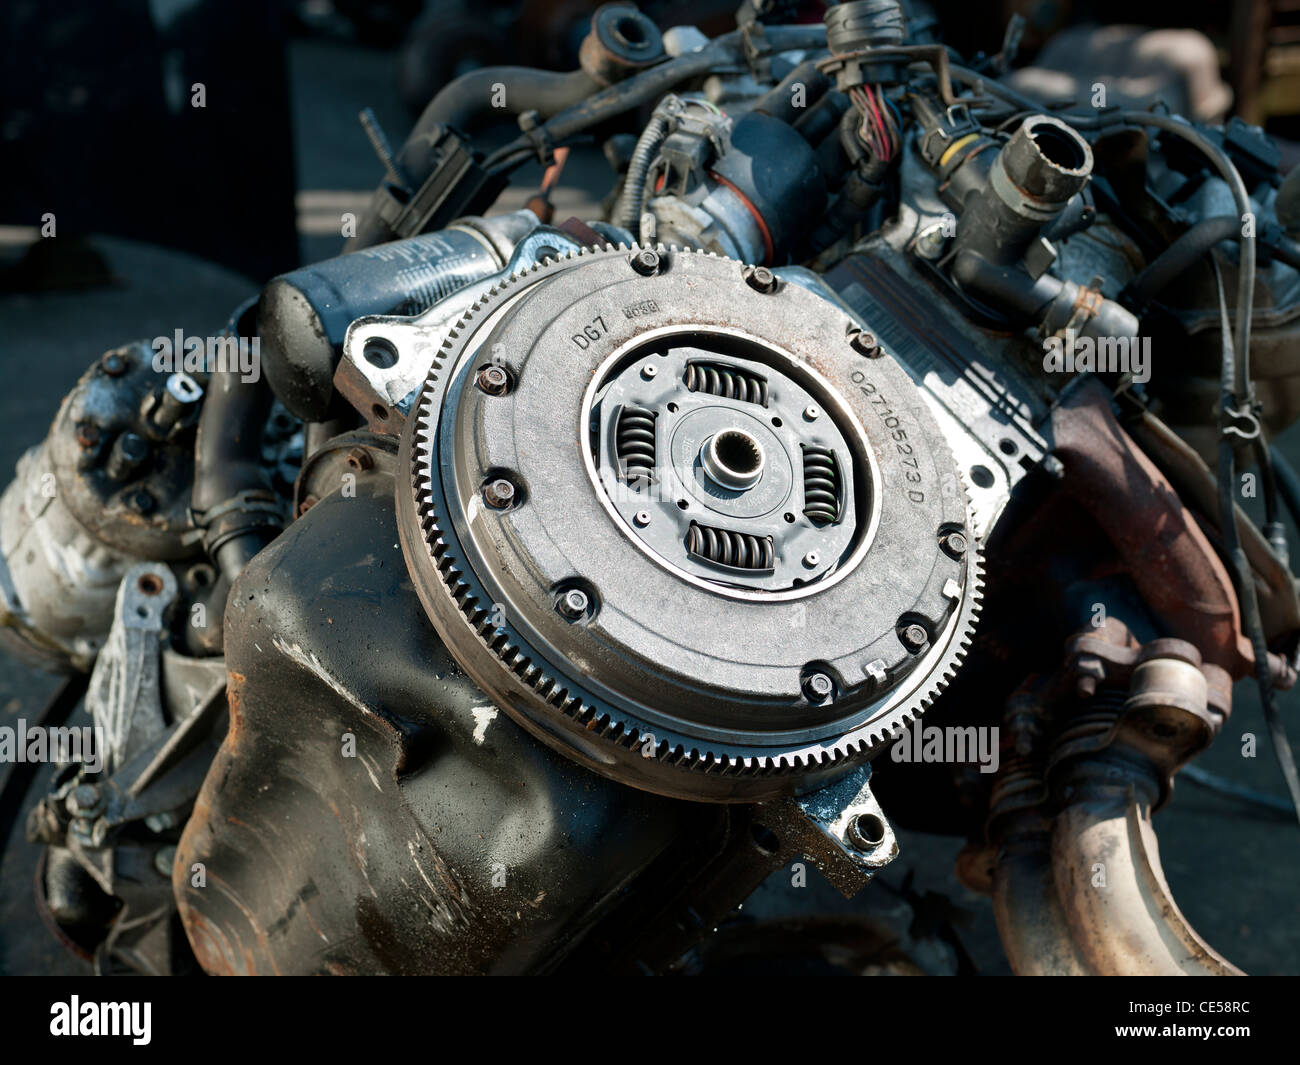 car scrapyard & close up of clutch plate - Stock Image